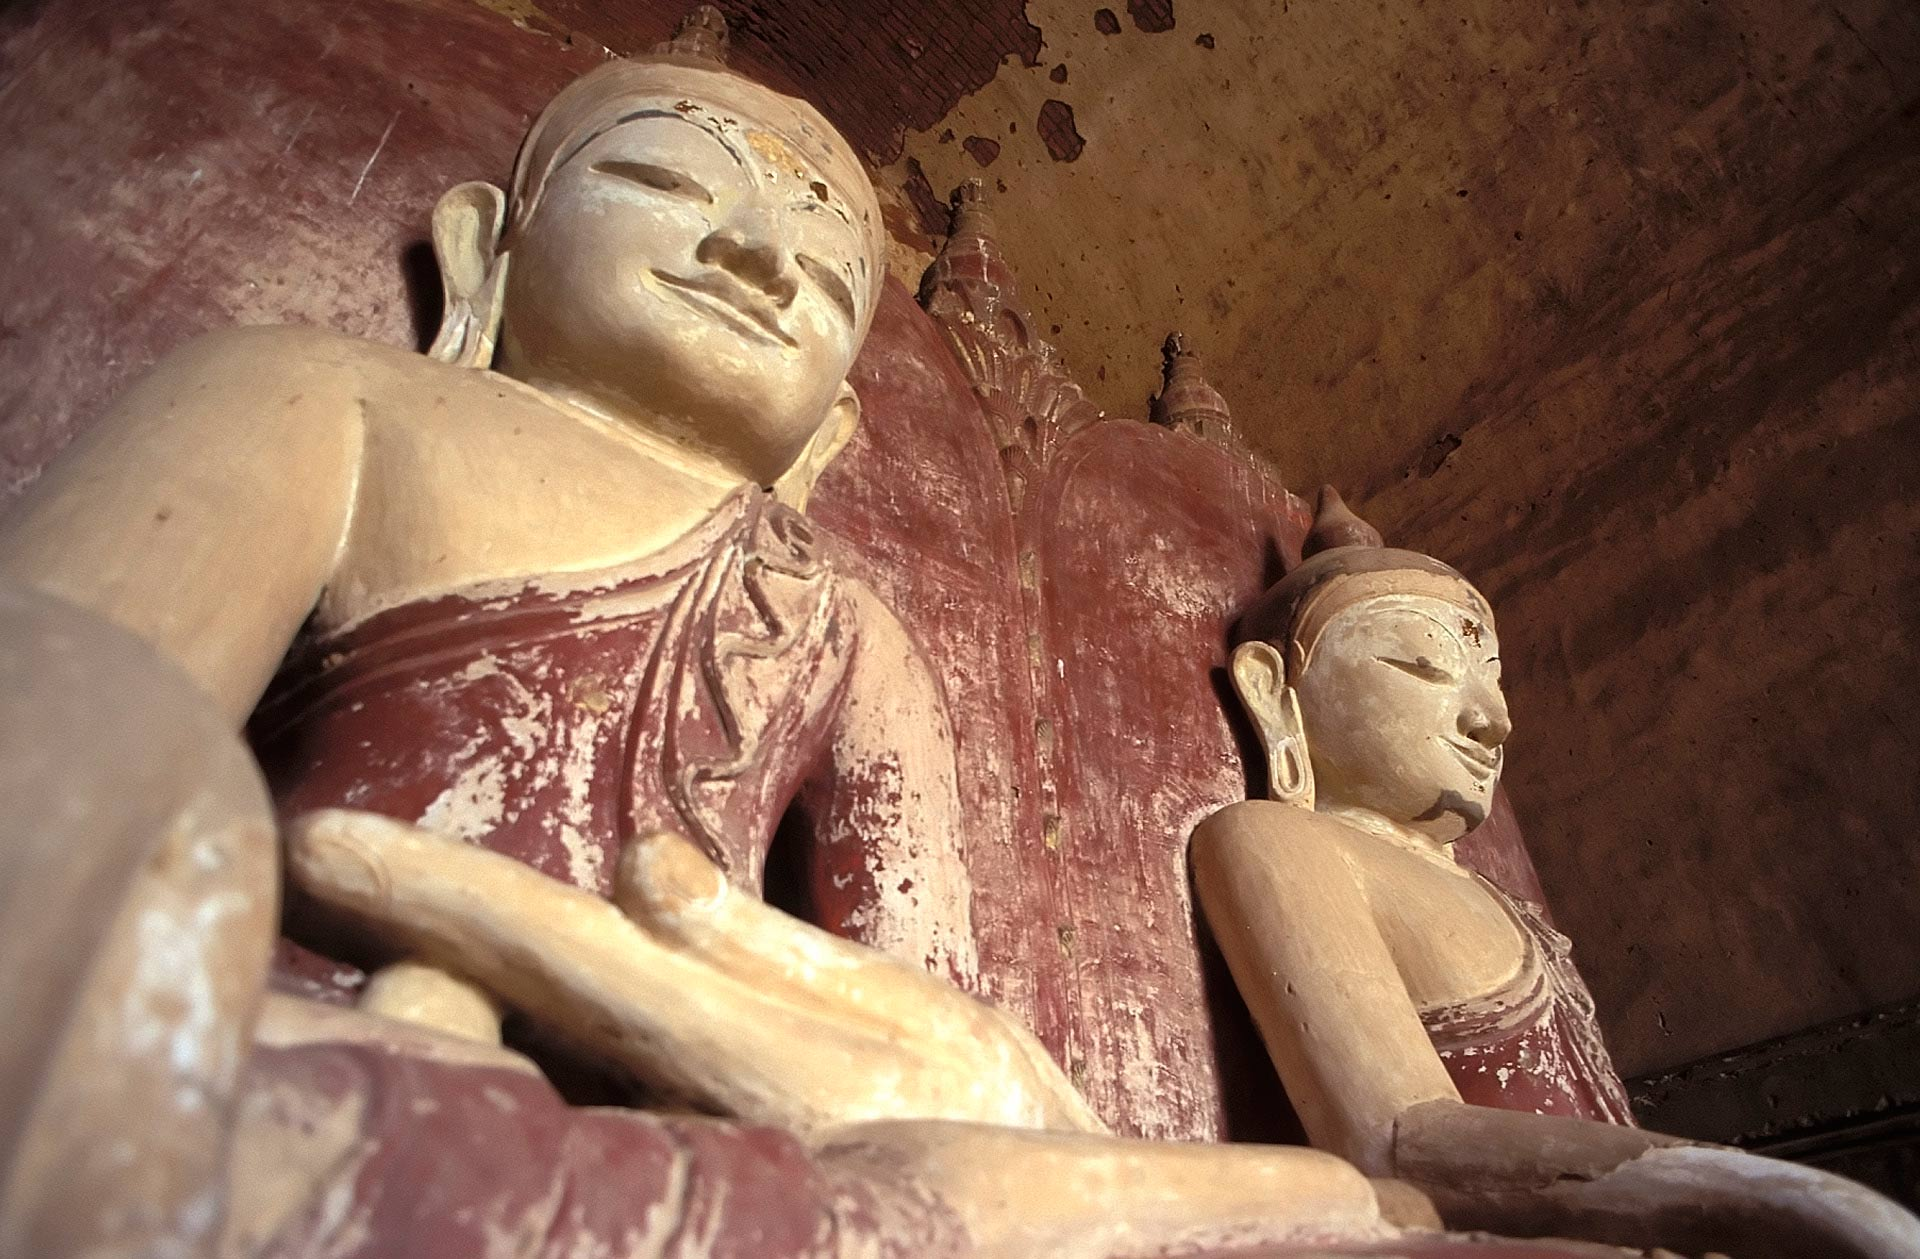 Side-by-side Gautama and Maitreya Buddhas at the Dhammayangyi Temple, Bagan (Pagan), Myanmar